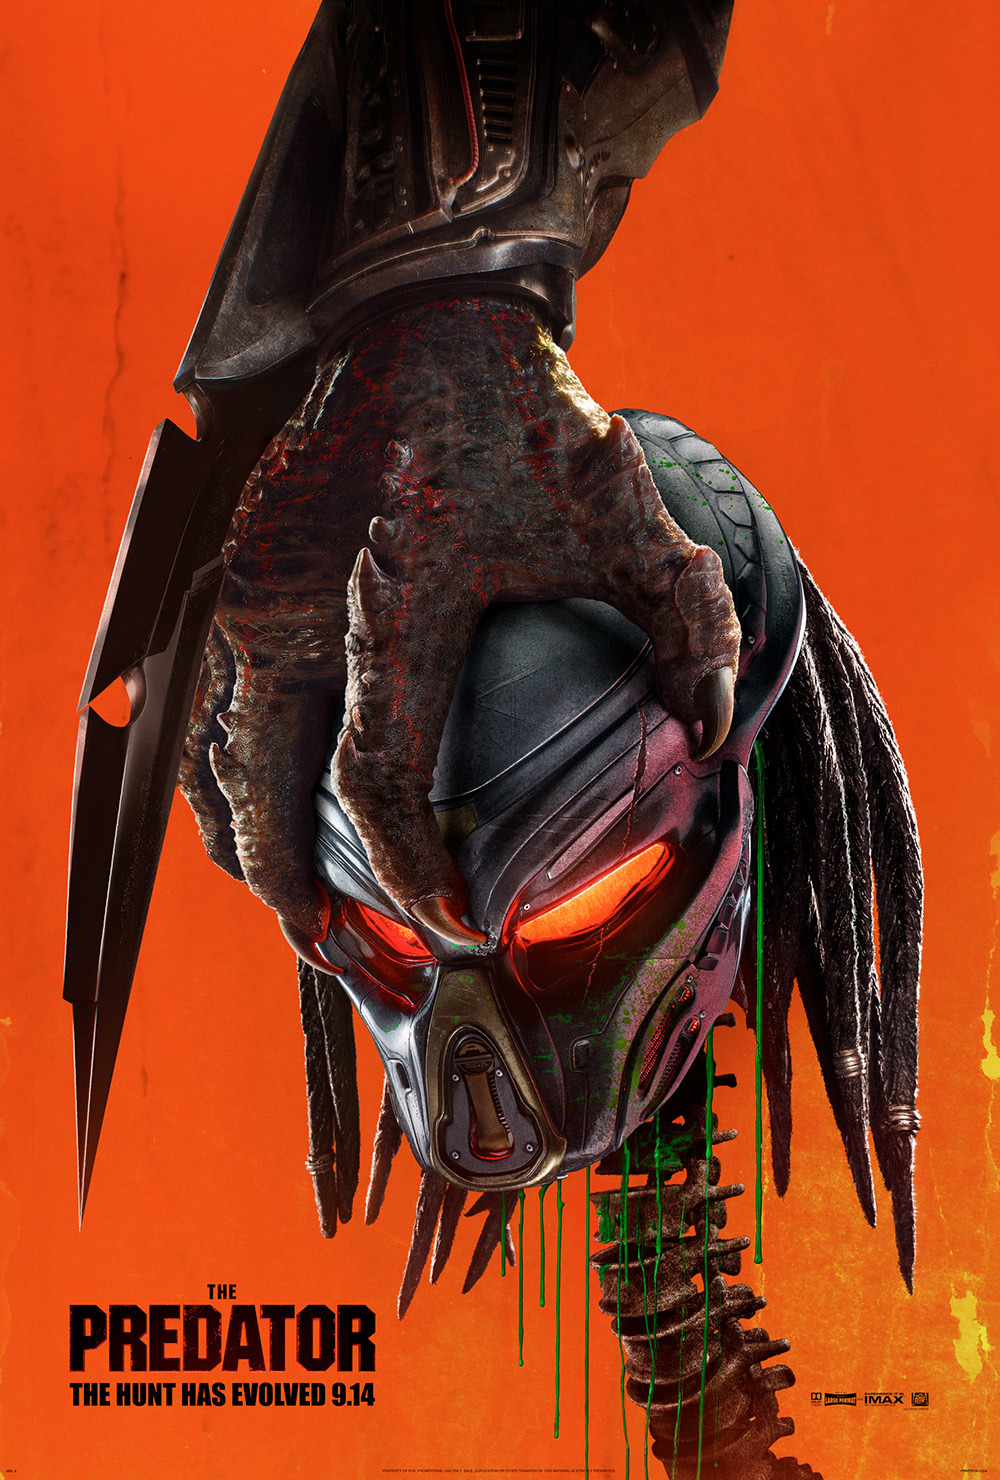 The Predator - credit / score mixer assistant